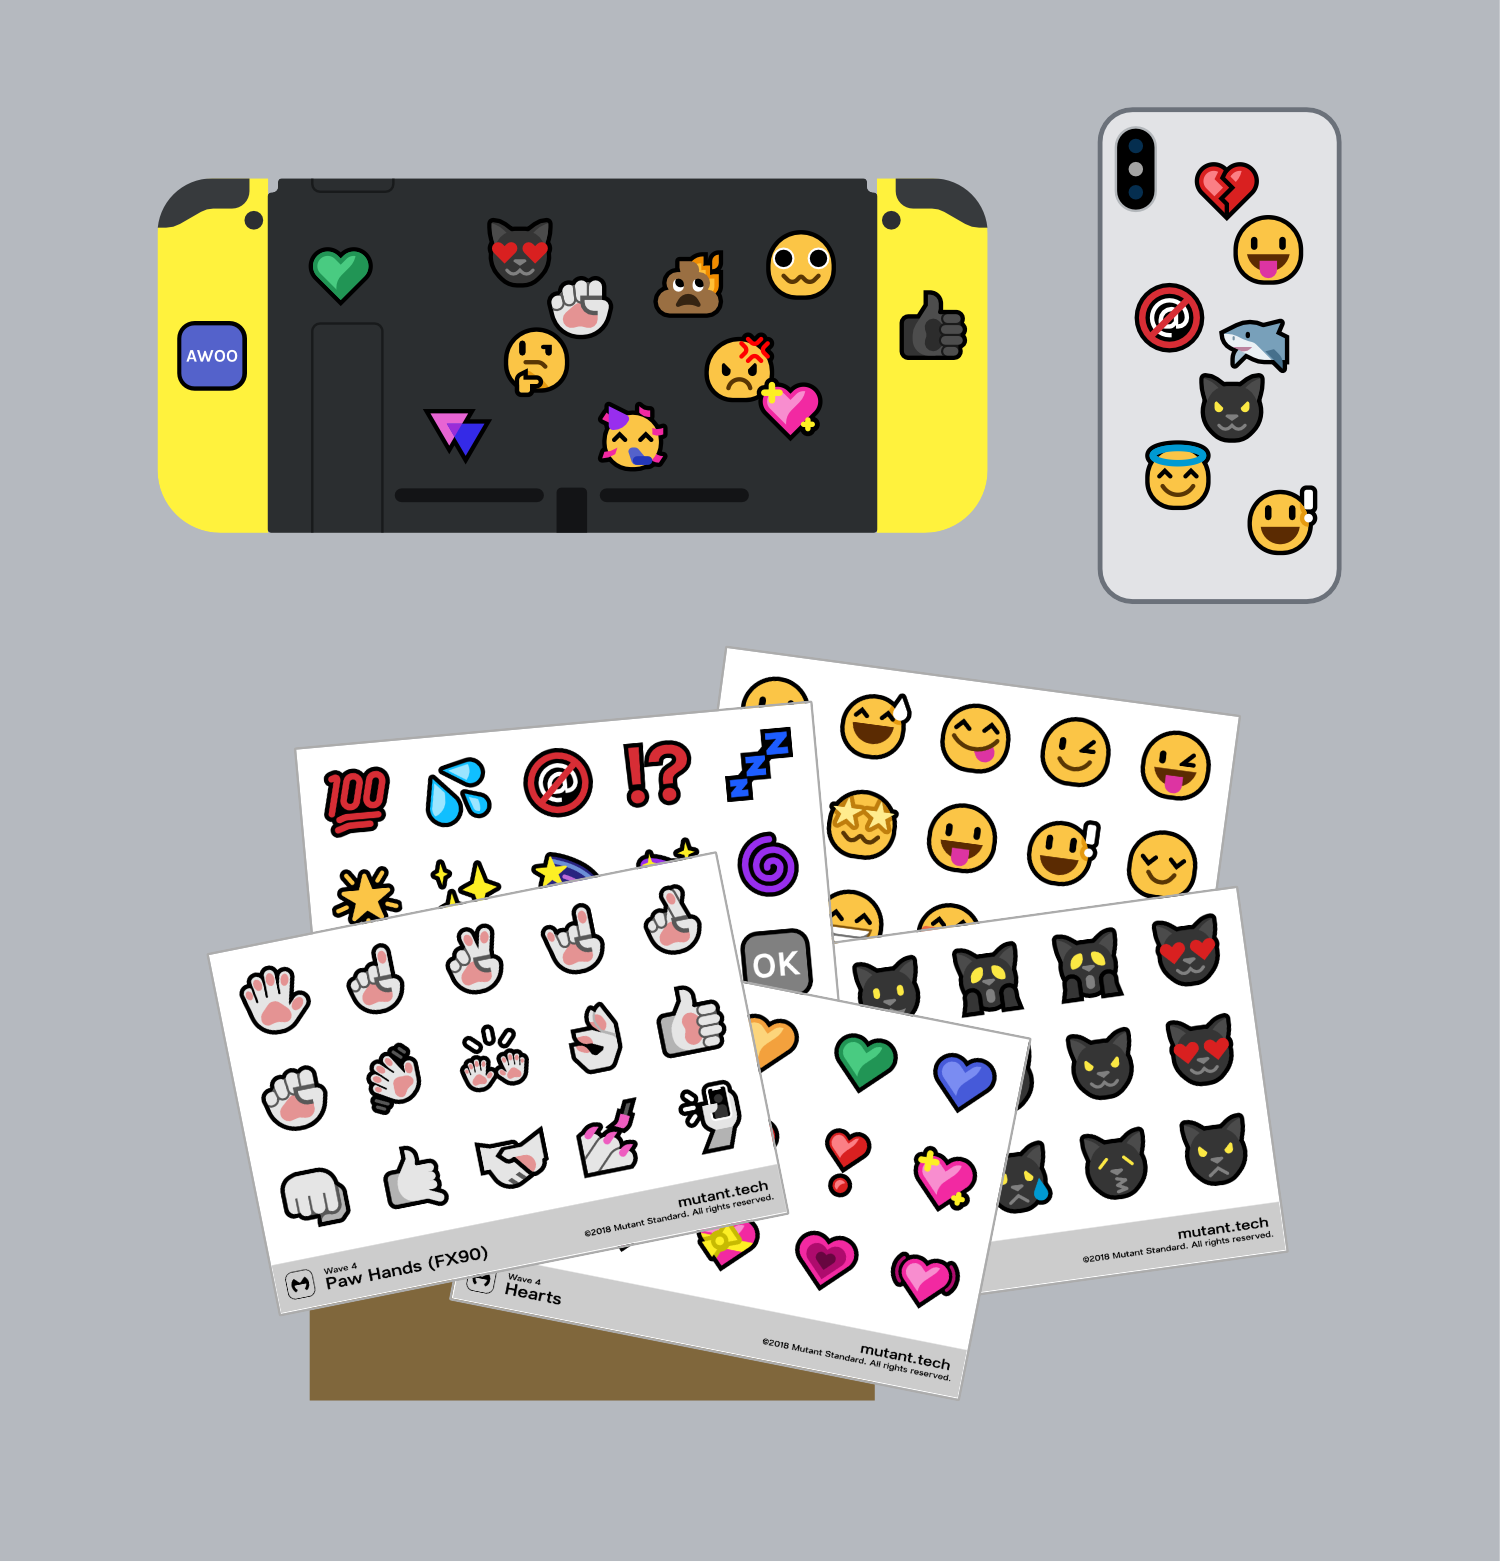 Below them are a variety of sticker sheets splayed out, each sheet has a grid of 15 emoji, and a little strip on the bottom with a title for each sheet.